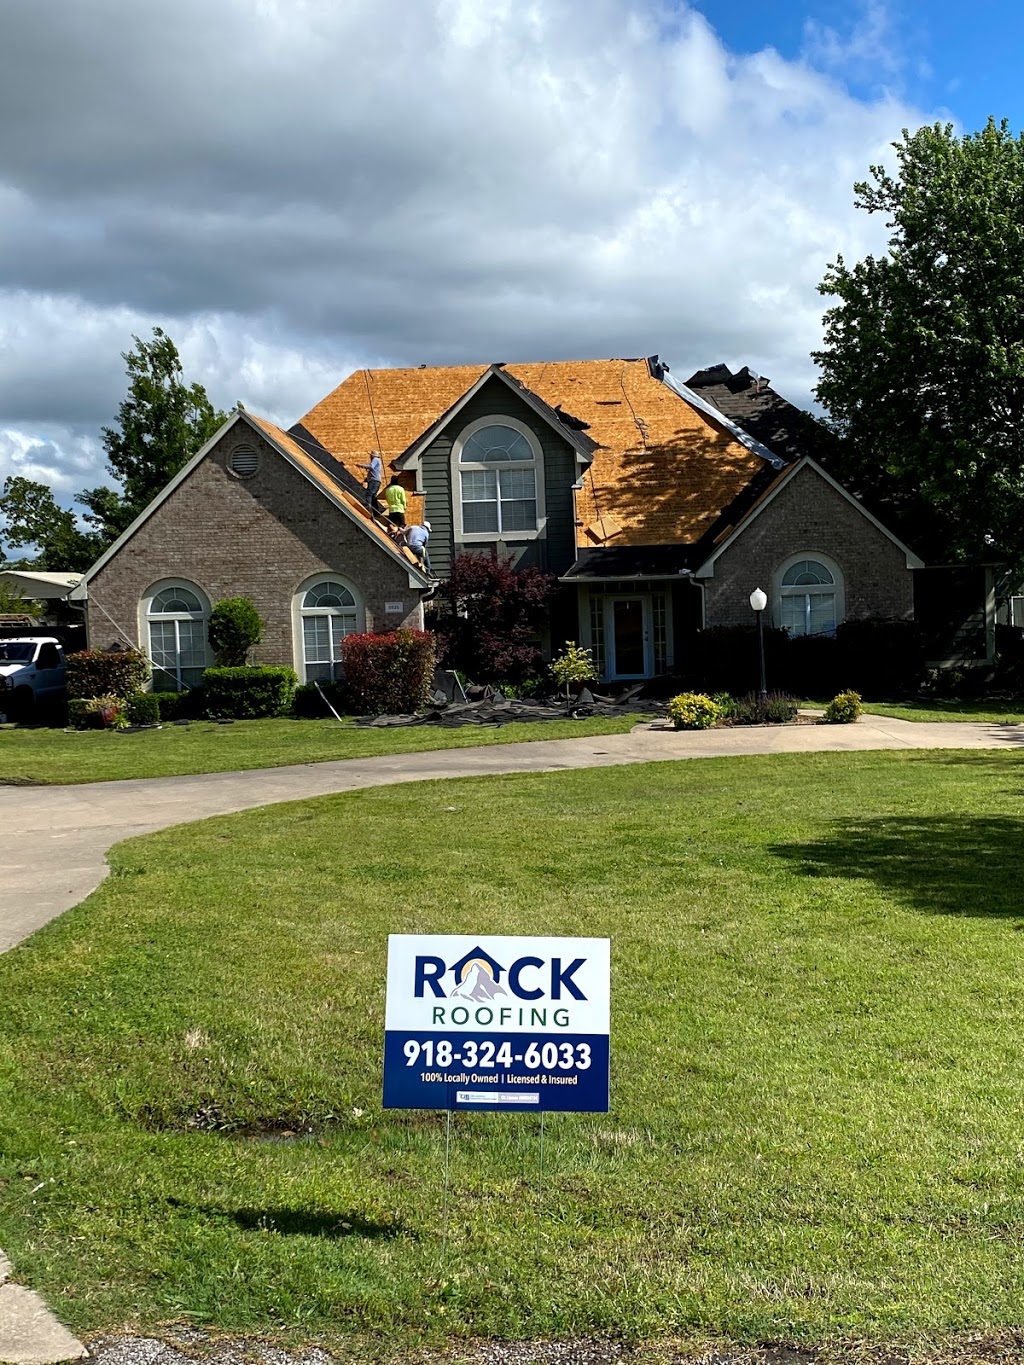 Rock Roofing, LLC - roofing contractor  | Photo 3 of 4 | Address: 807 E A St #101, Jenks, OK 74037, USA | Phone: (918) 324-6033